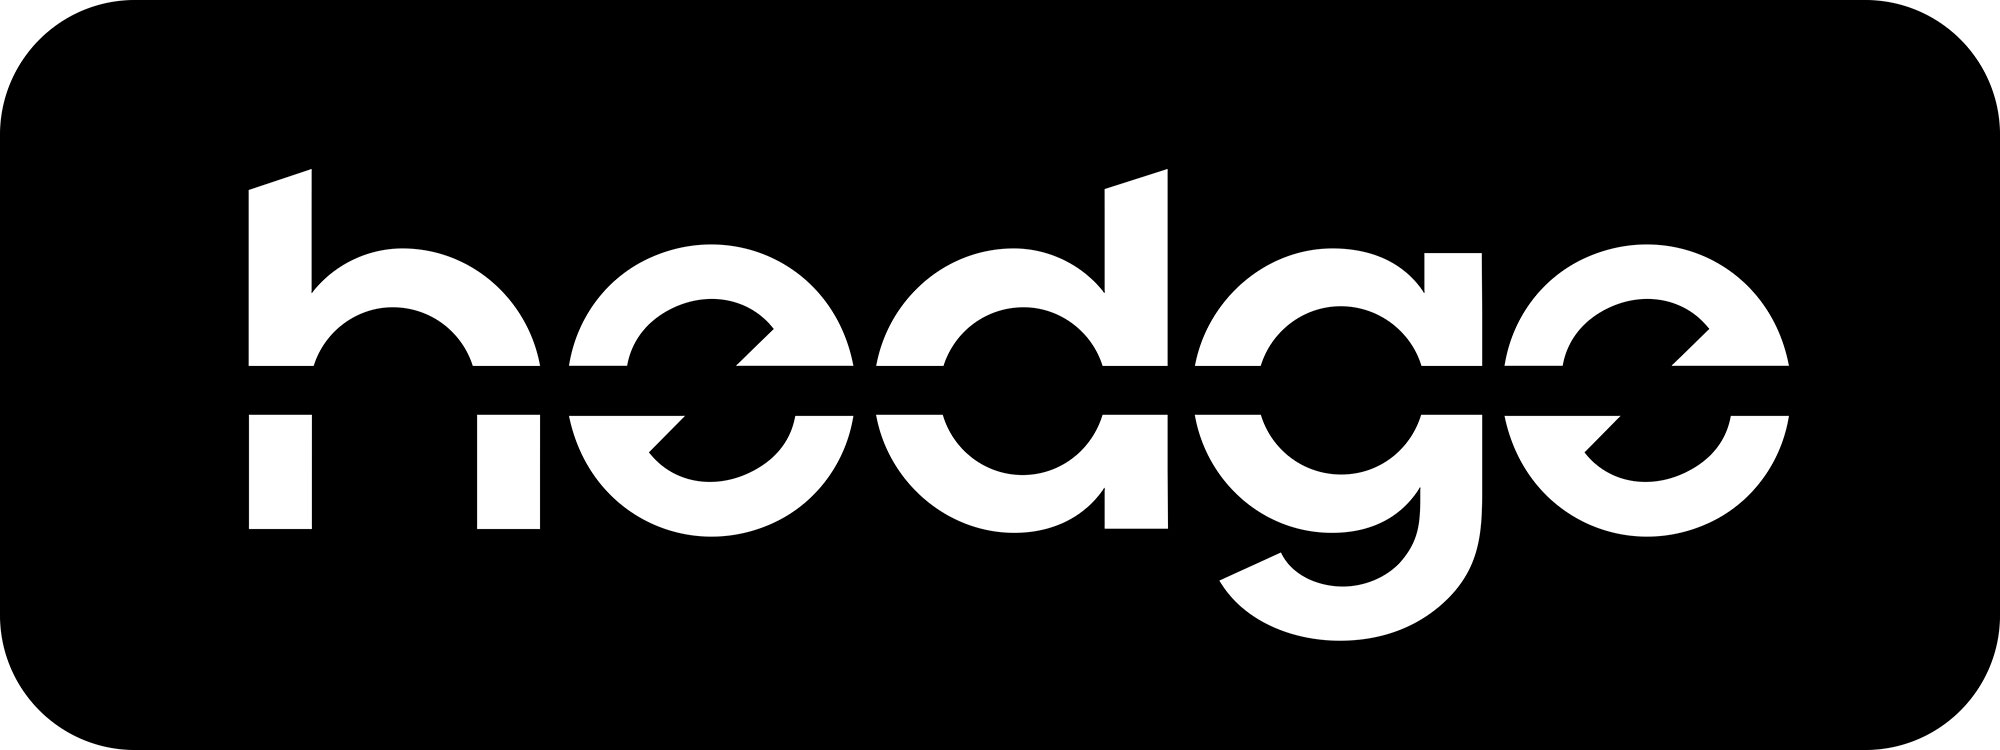 Hedge raises $3M to invest in new era of video workflows